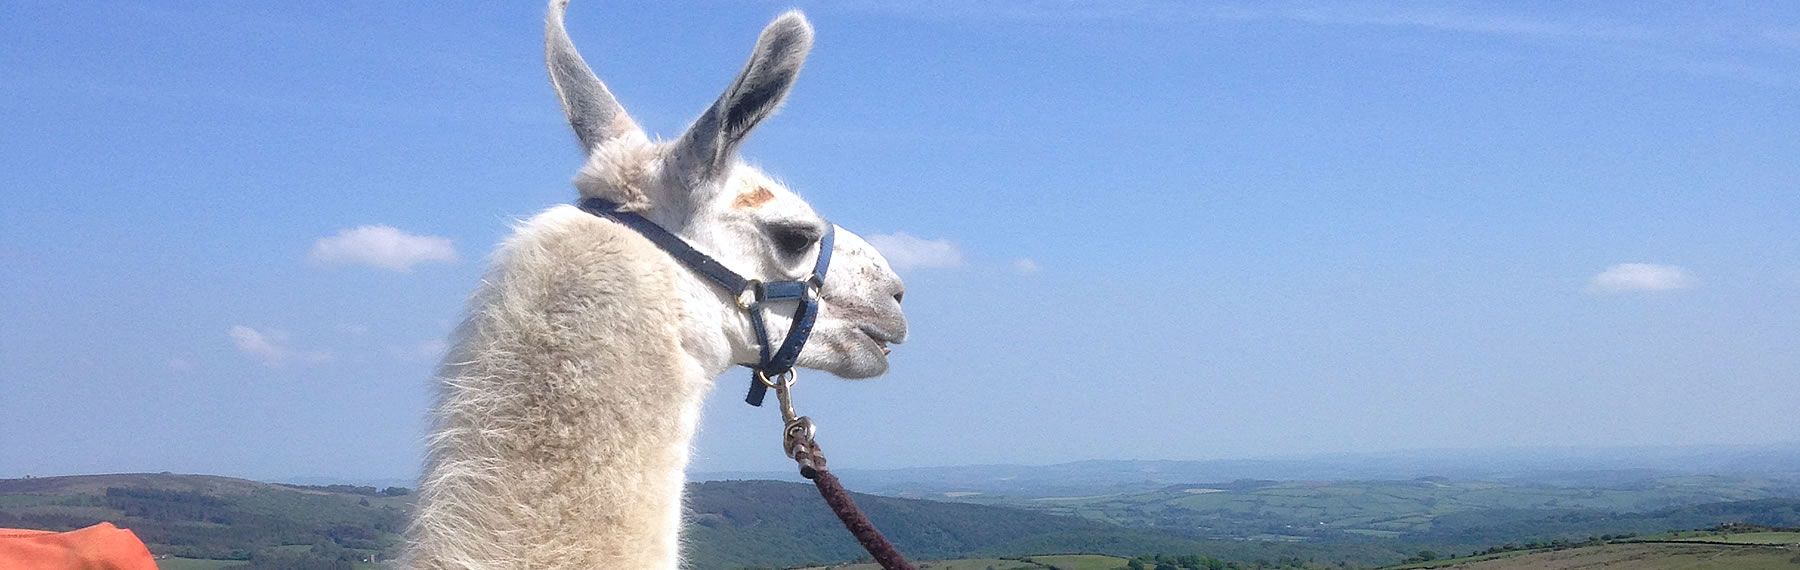 Llama Taking in Dartmoor View